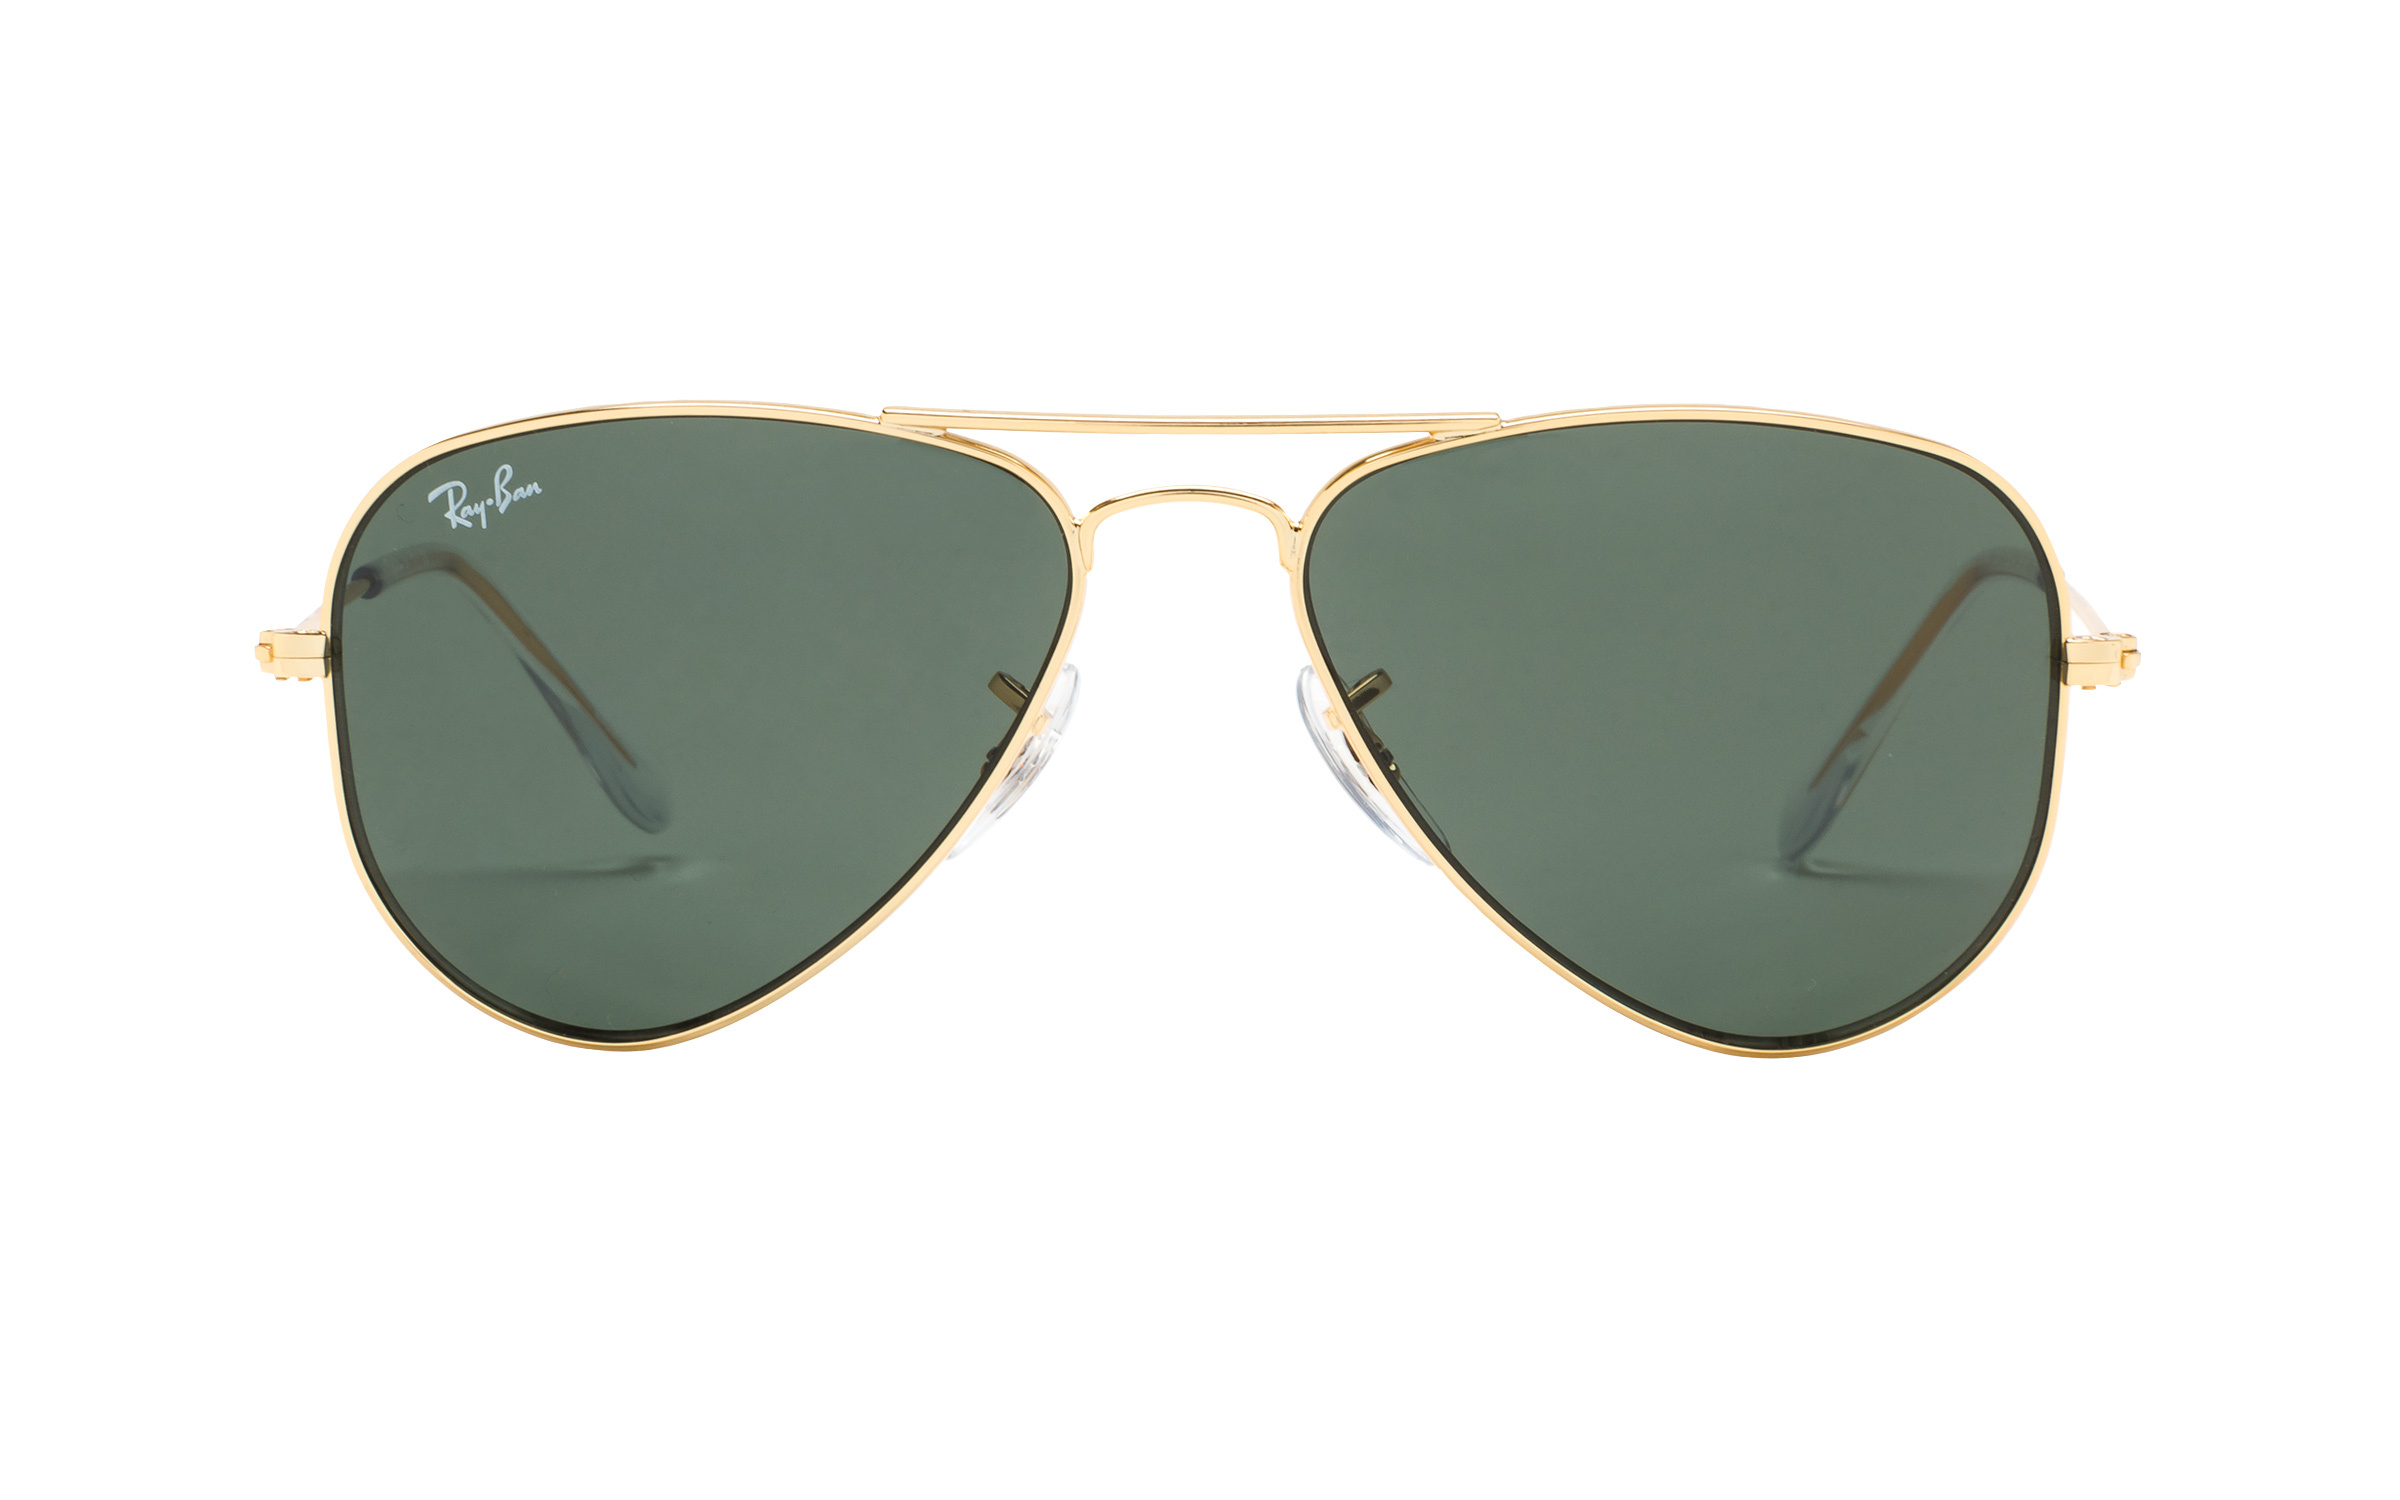 RayBanJunior Ray-Ban Junior RJ9506S 223 71 52 Sunglasses in Gold | Plastic/Metal - Online Coastal